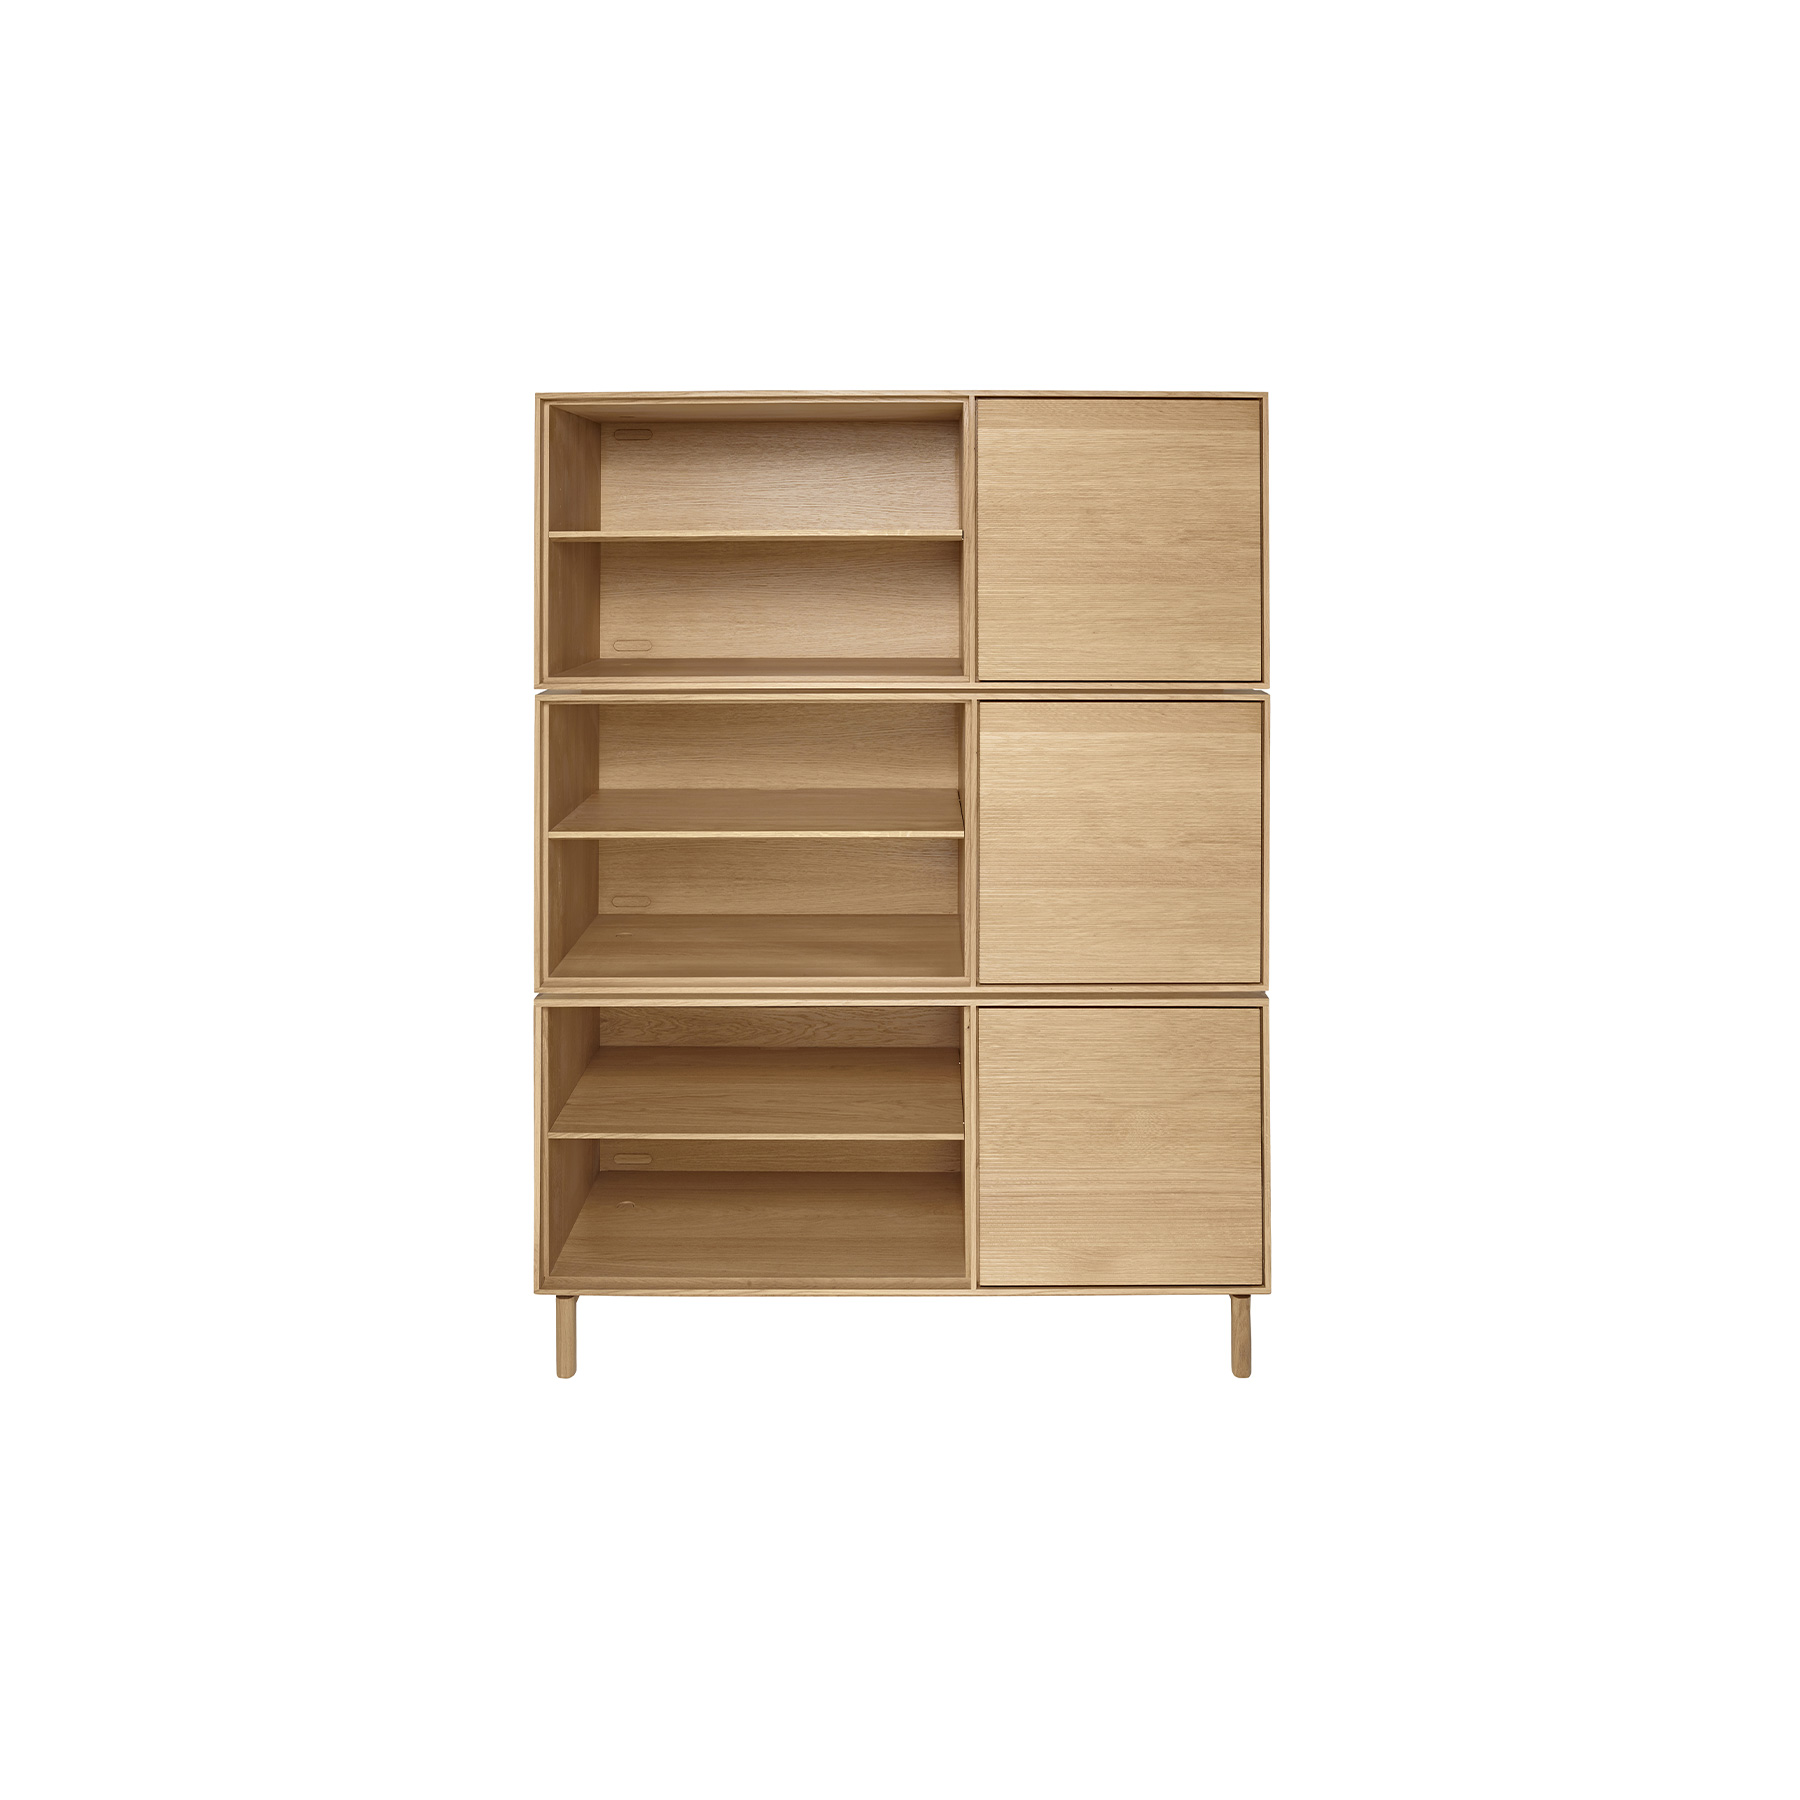 Modulo Cabinet With Open Shelf - <p>The brief for Modulo was to create a simple, flexible storage system. Modulo is built around a single basic solid oak cabinet carcass which can be specified with either doors and drawers, doors and shelves, drawers and shelves or just shelves. Modulo combines traditional cabinet construction with the modern desire for choice and personalisation.  Each option is available oriented left-handed or right-handed and can be used individually or stacked and combined to offer numerous storage solutions. Wood finishes and colour samples are shown for guidance only as screen colours may vary. We would recommend ordering a sample in your chosen finish. However, wood is a natural material and varies in colour, grain and structure.<br /> Doors and Drawers available in Natural (DM) finish only. Cabinets are available in Natural (DM), Darkened (DA) or Black (BK) finish.</p>  | Matter of Stuff